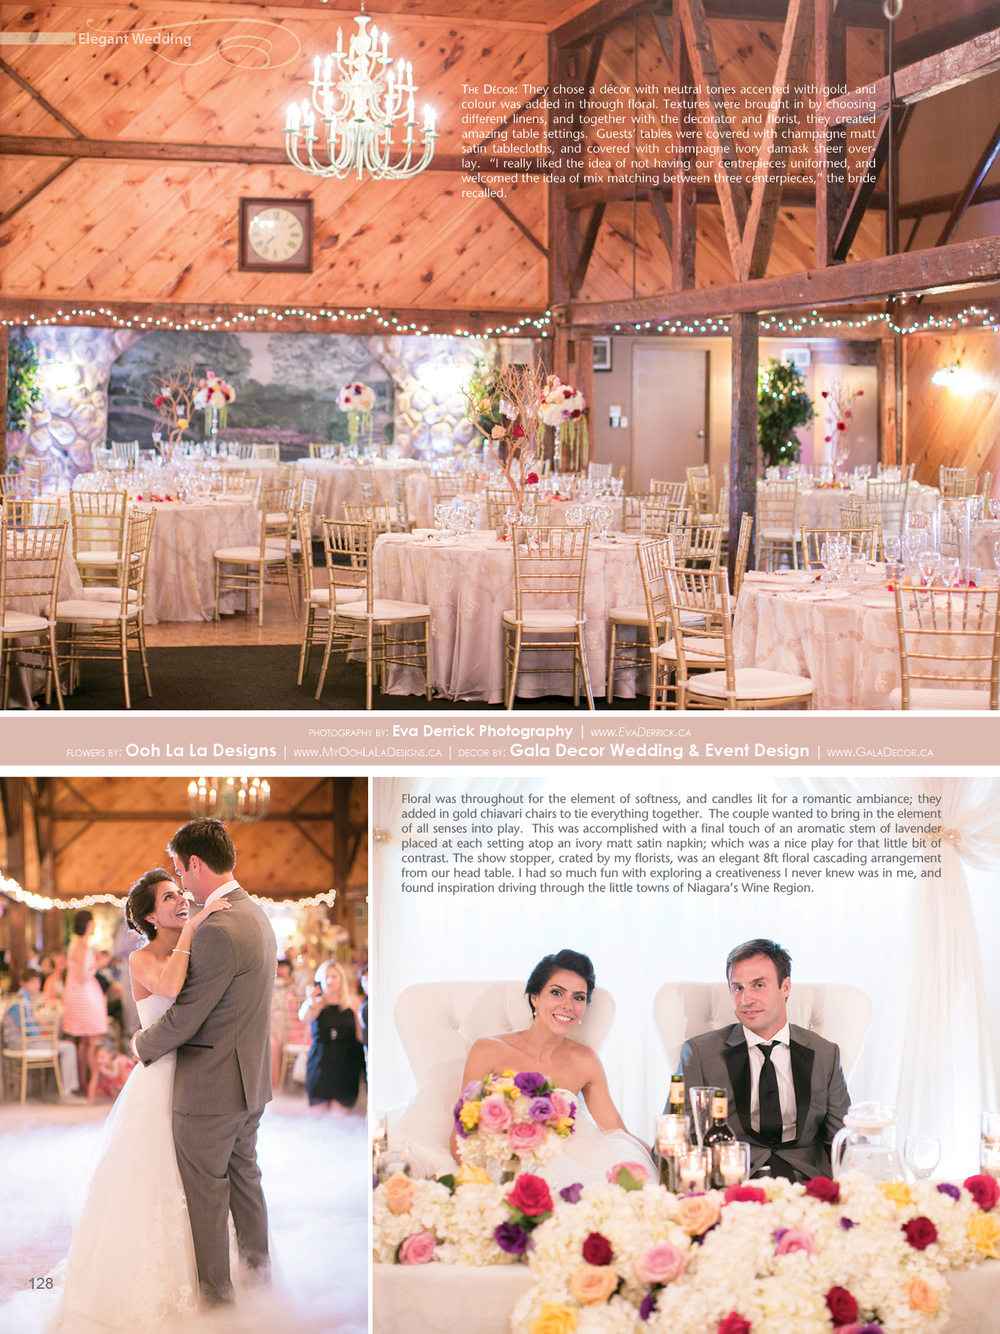 niagara-wedding-photographer-niagara-region-niagara-weddings-elegant-wedding-magazine-feature-nancy-kyle-chipchura-phoenix-coyotes-eva-derrick-photography-hernder-estate-wines-winery-vineyard-wedding-barn-wedding-2.jpg